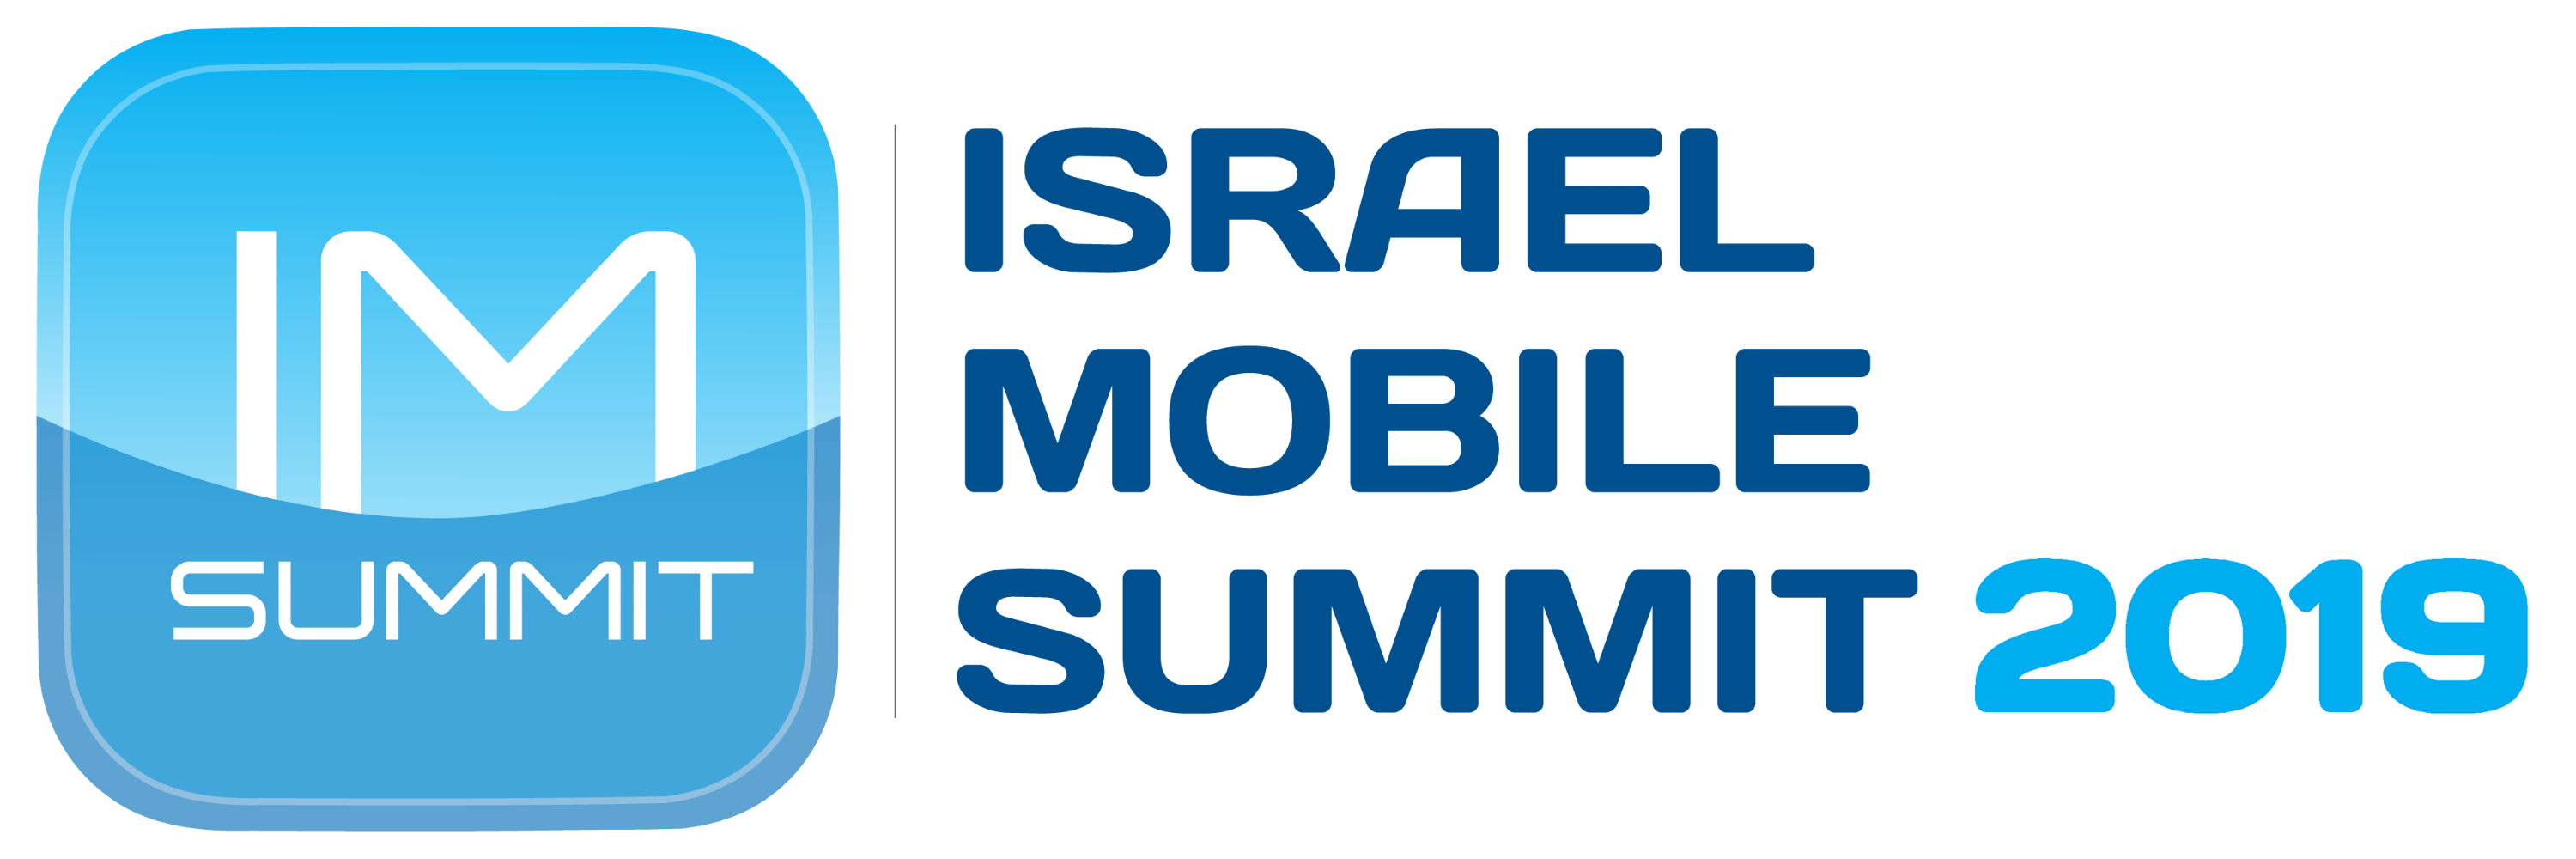 Networking | Israel Mobile Summit 2019